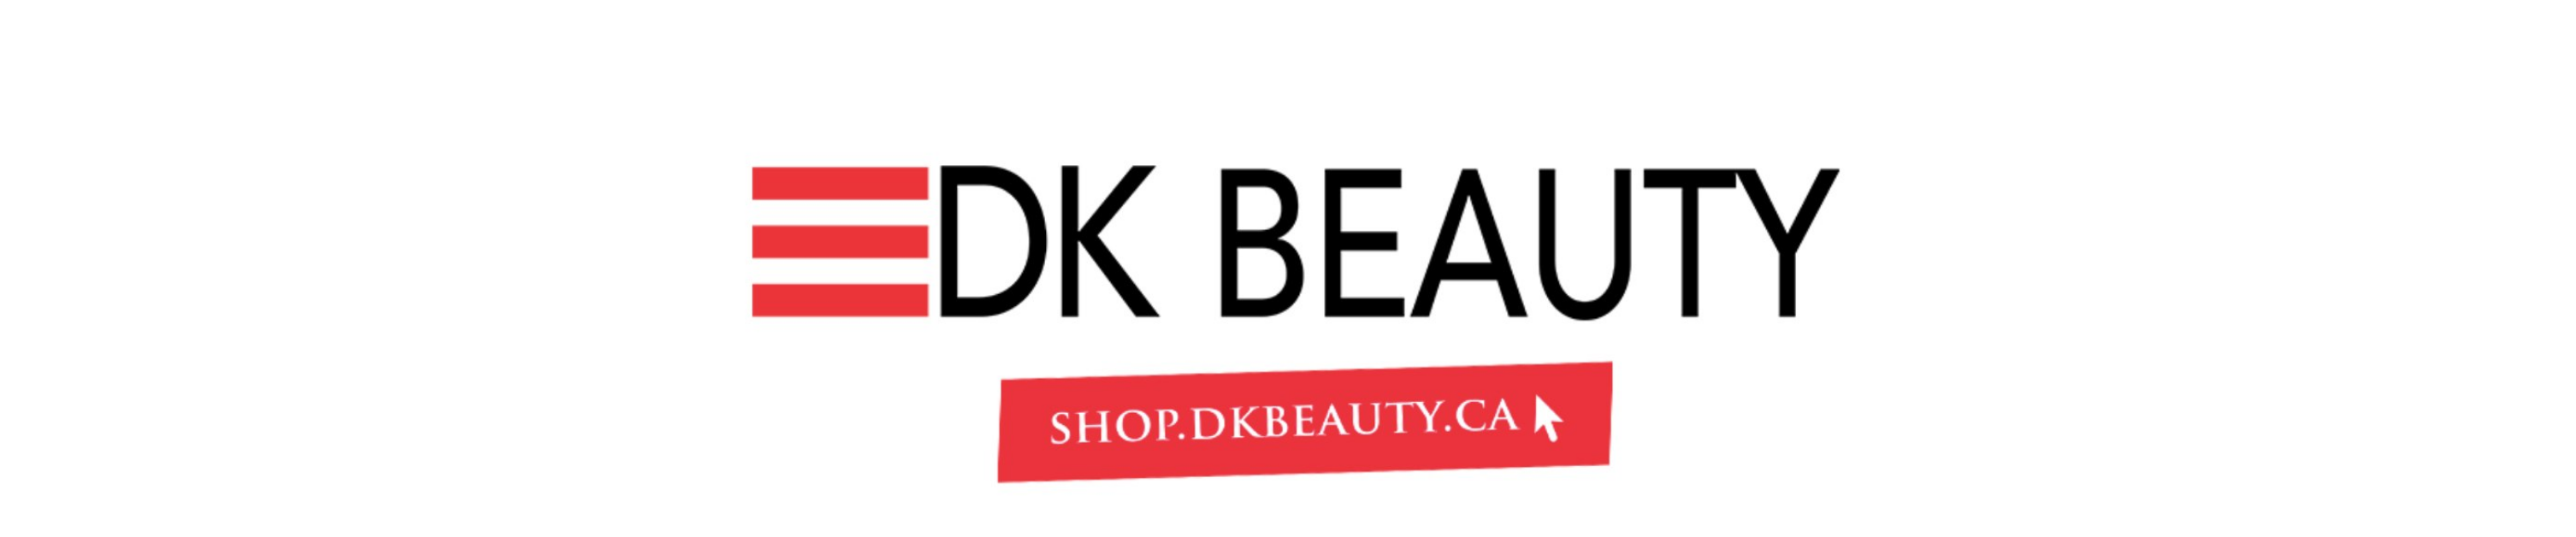 DK BEAUTY PROFESSIONAL BEAUTY SUPPLIES